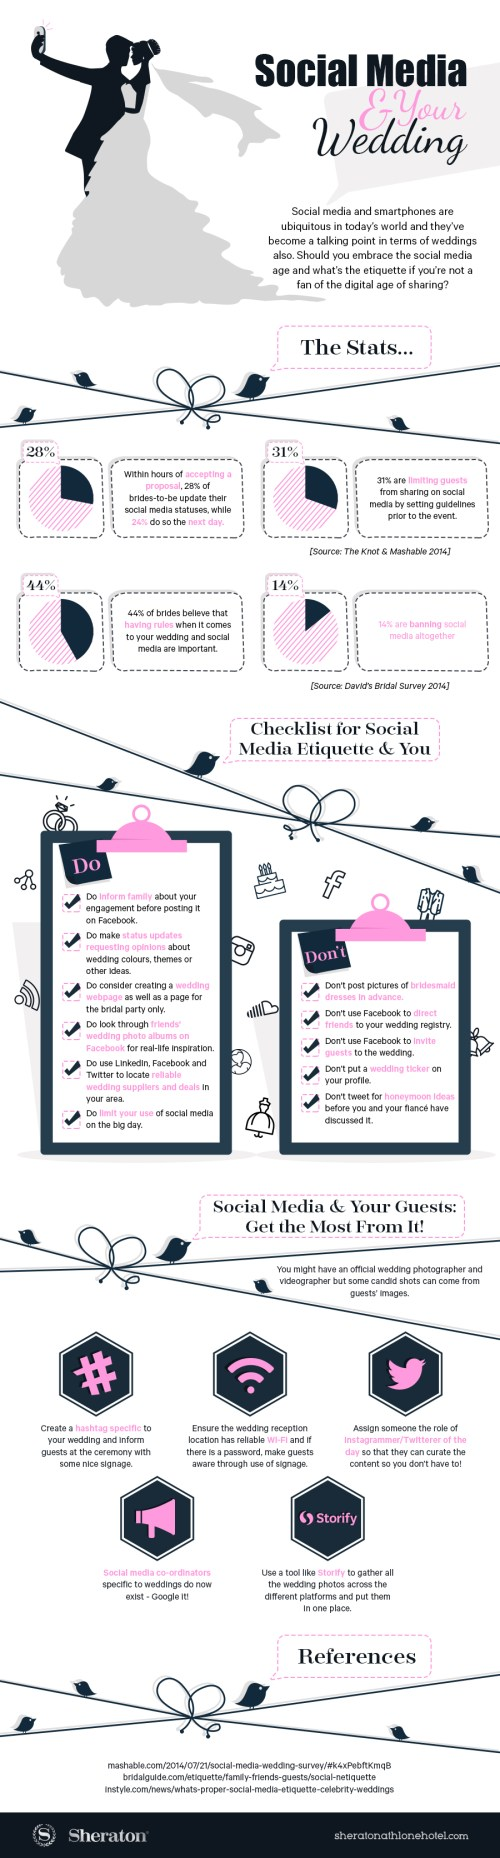 Social-Media-Etiquette-and-Weddings-infographic